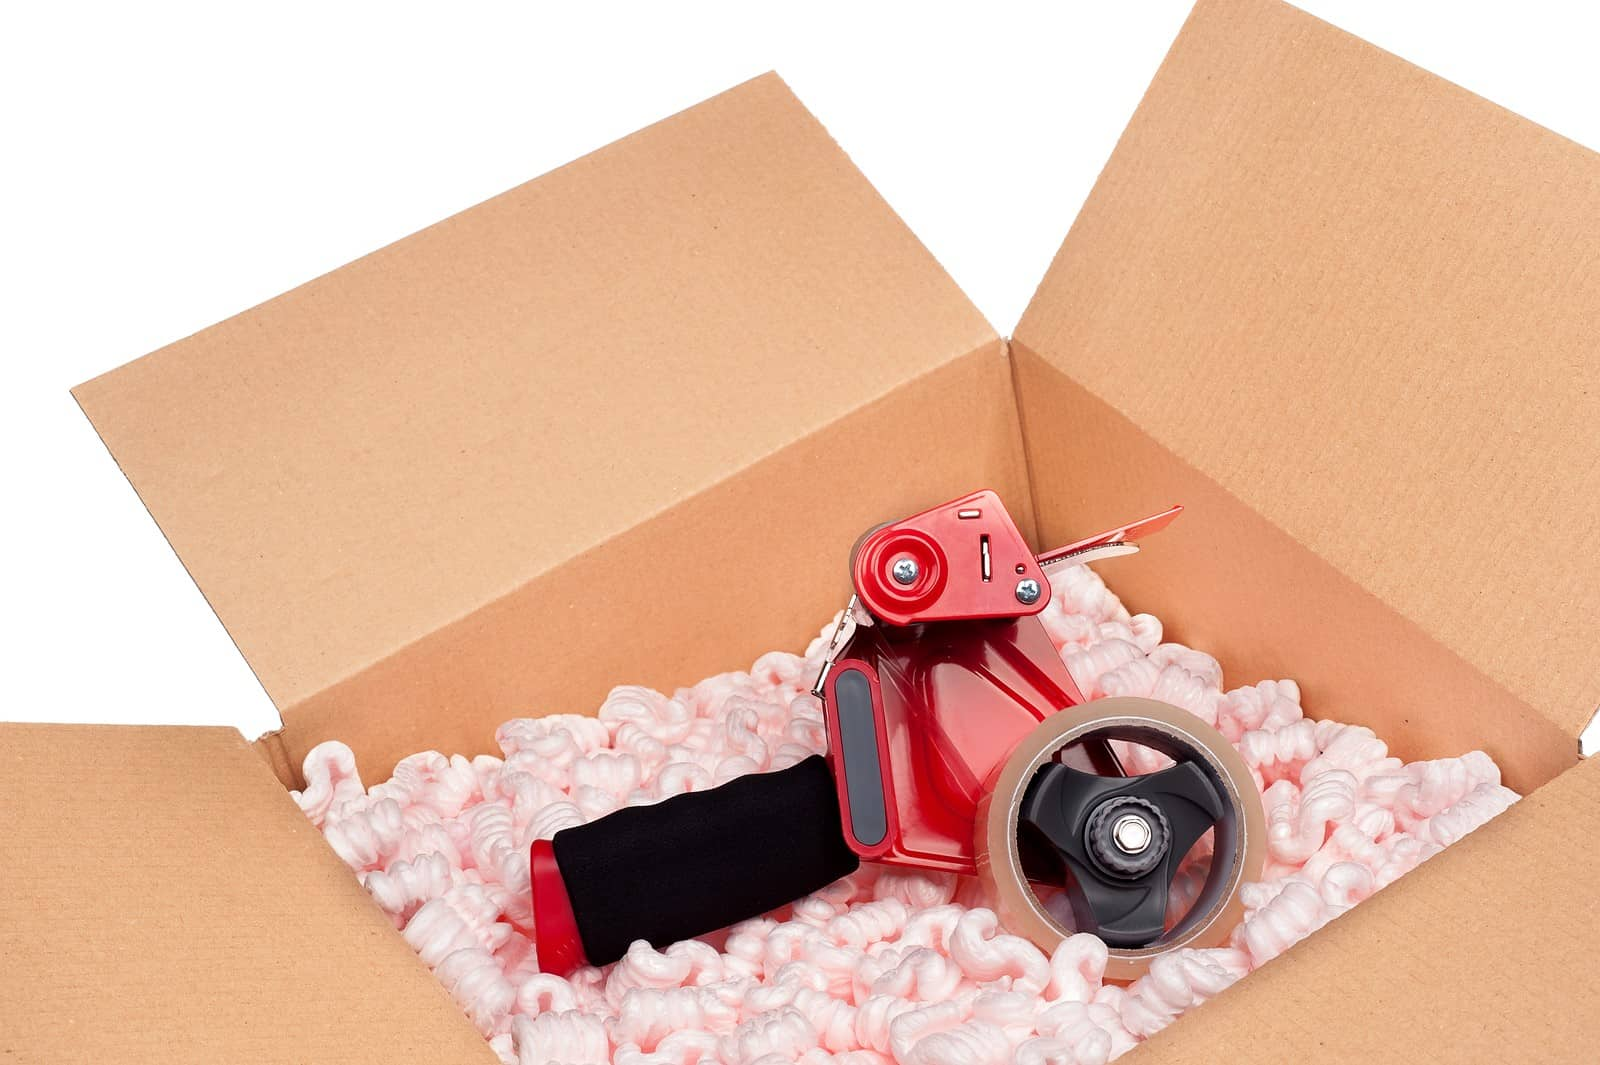 Mississauga Movers Tips How to Safely Pack Your Fragile Belongings